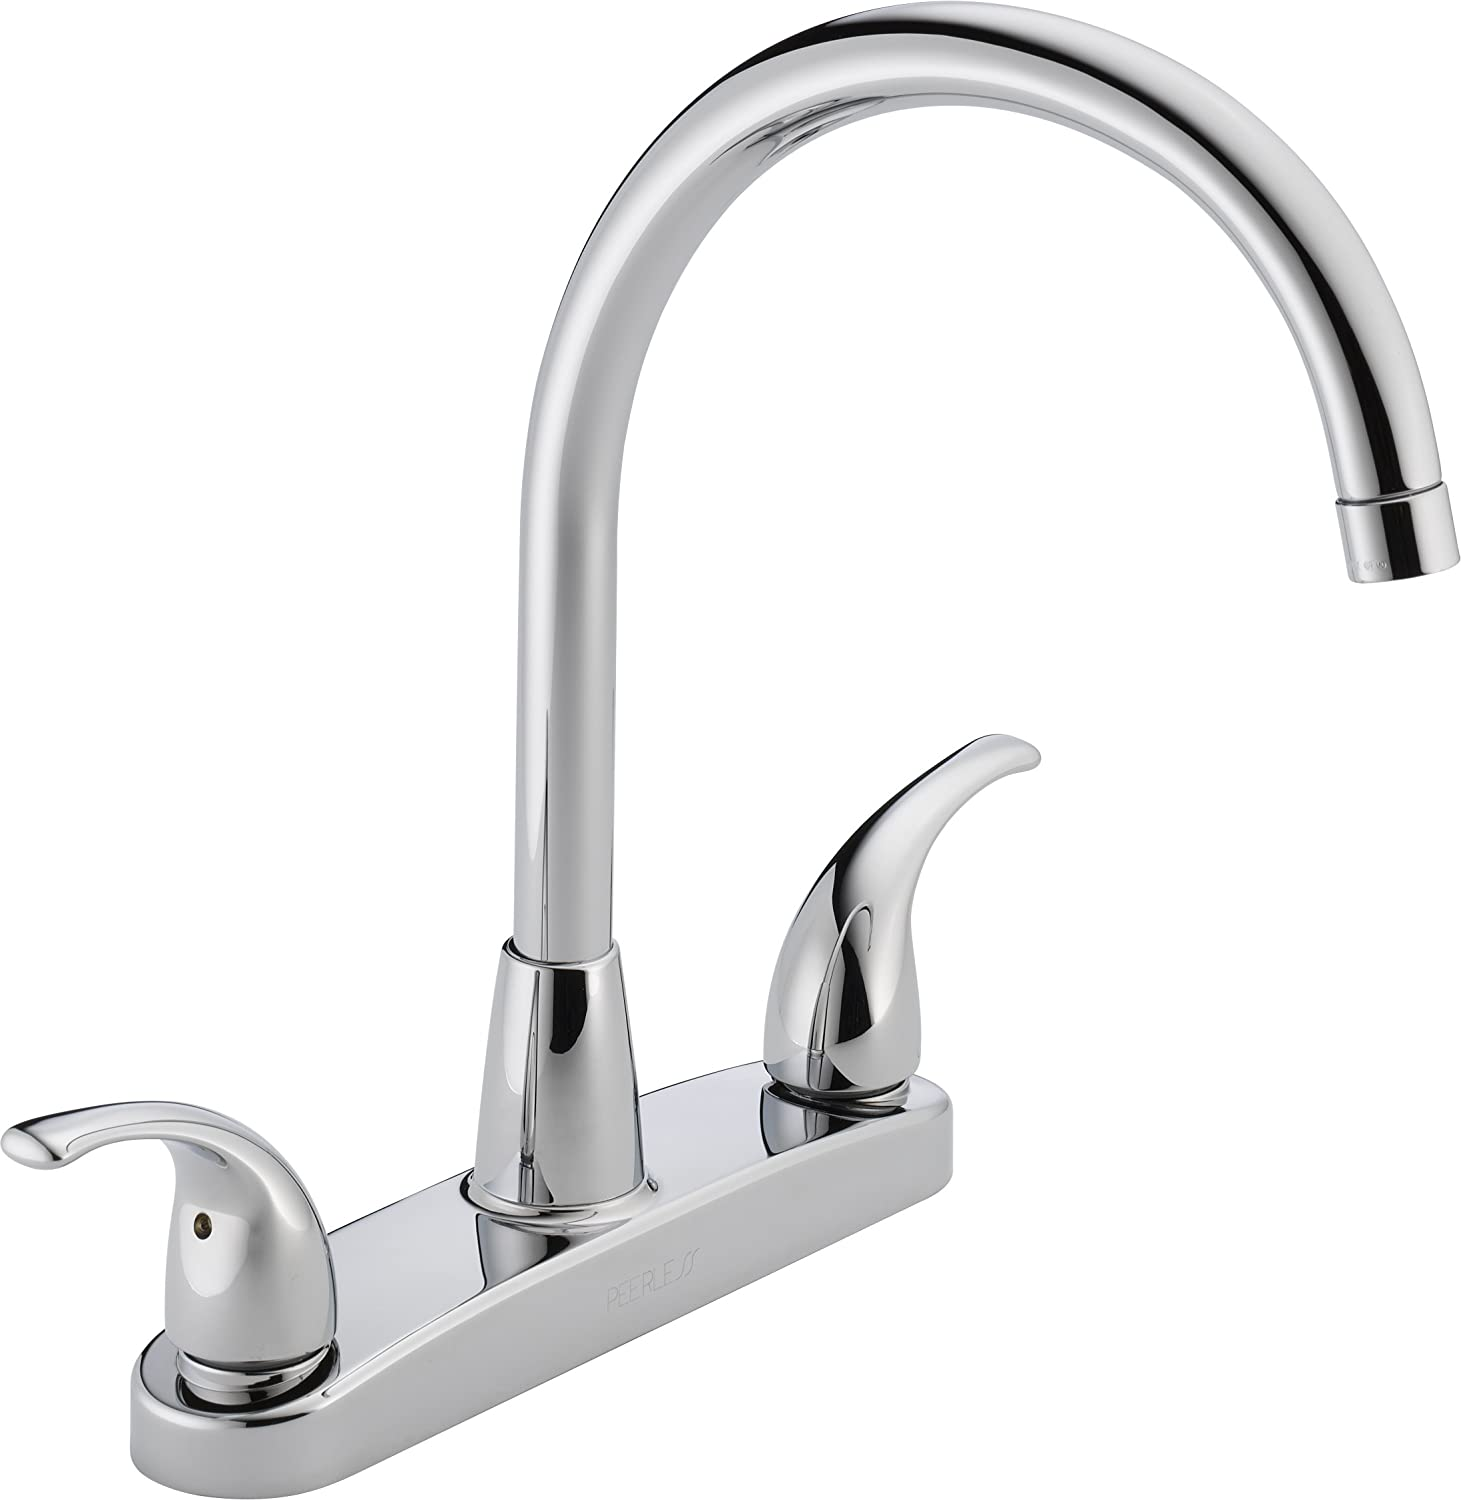 Peerless p299568lf choice two handle kitchen faucet chrome touch on kitchen sink faucets amazon com